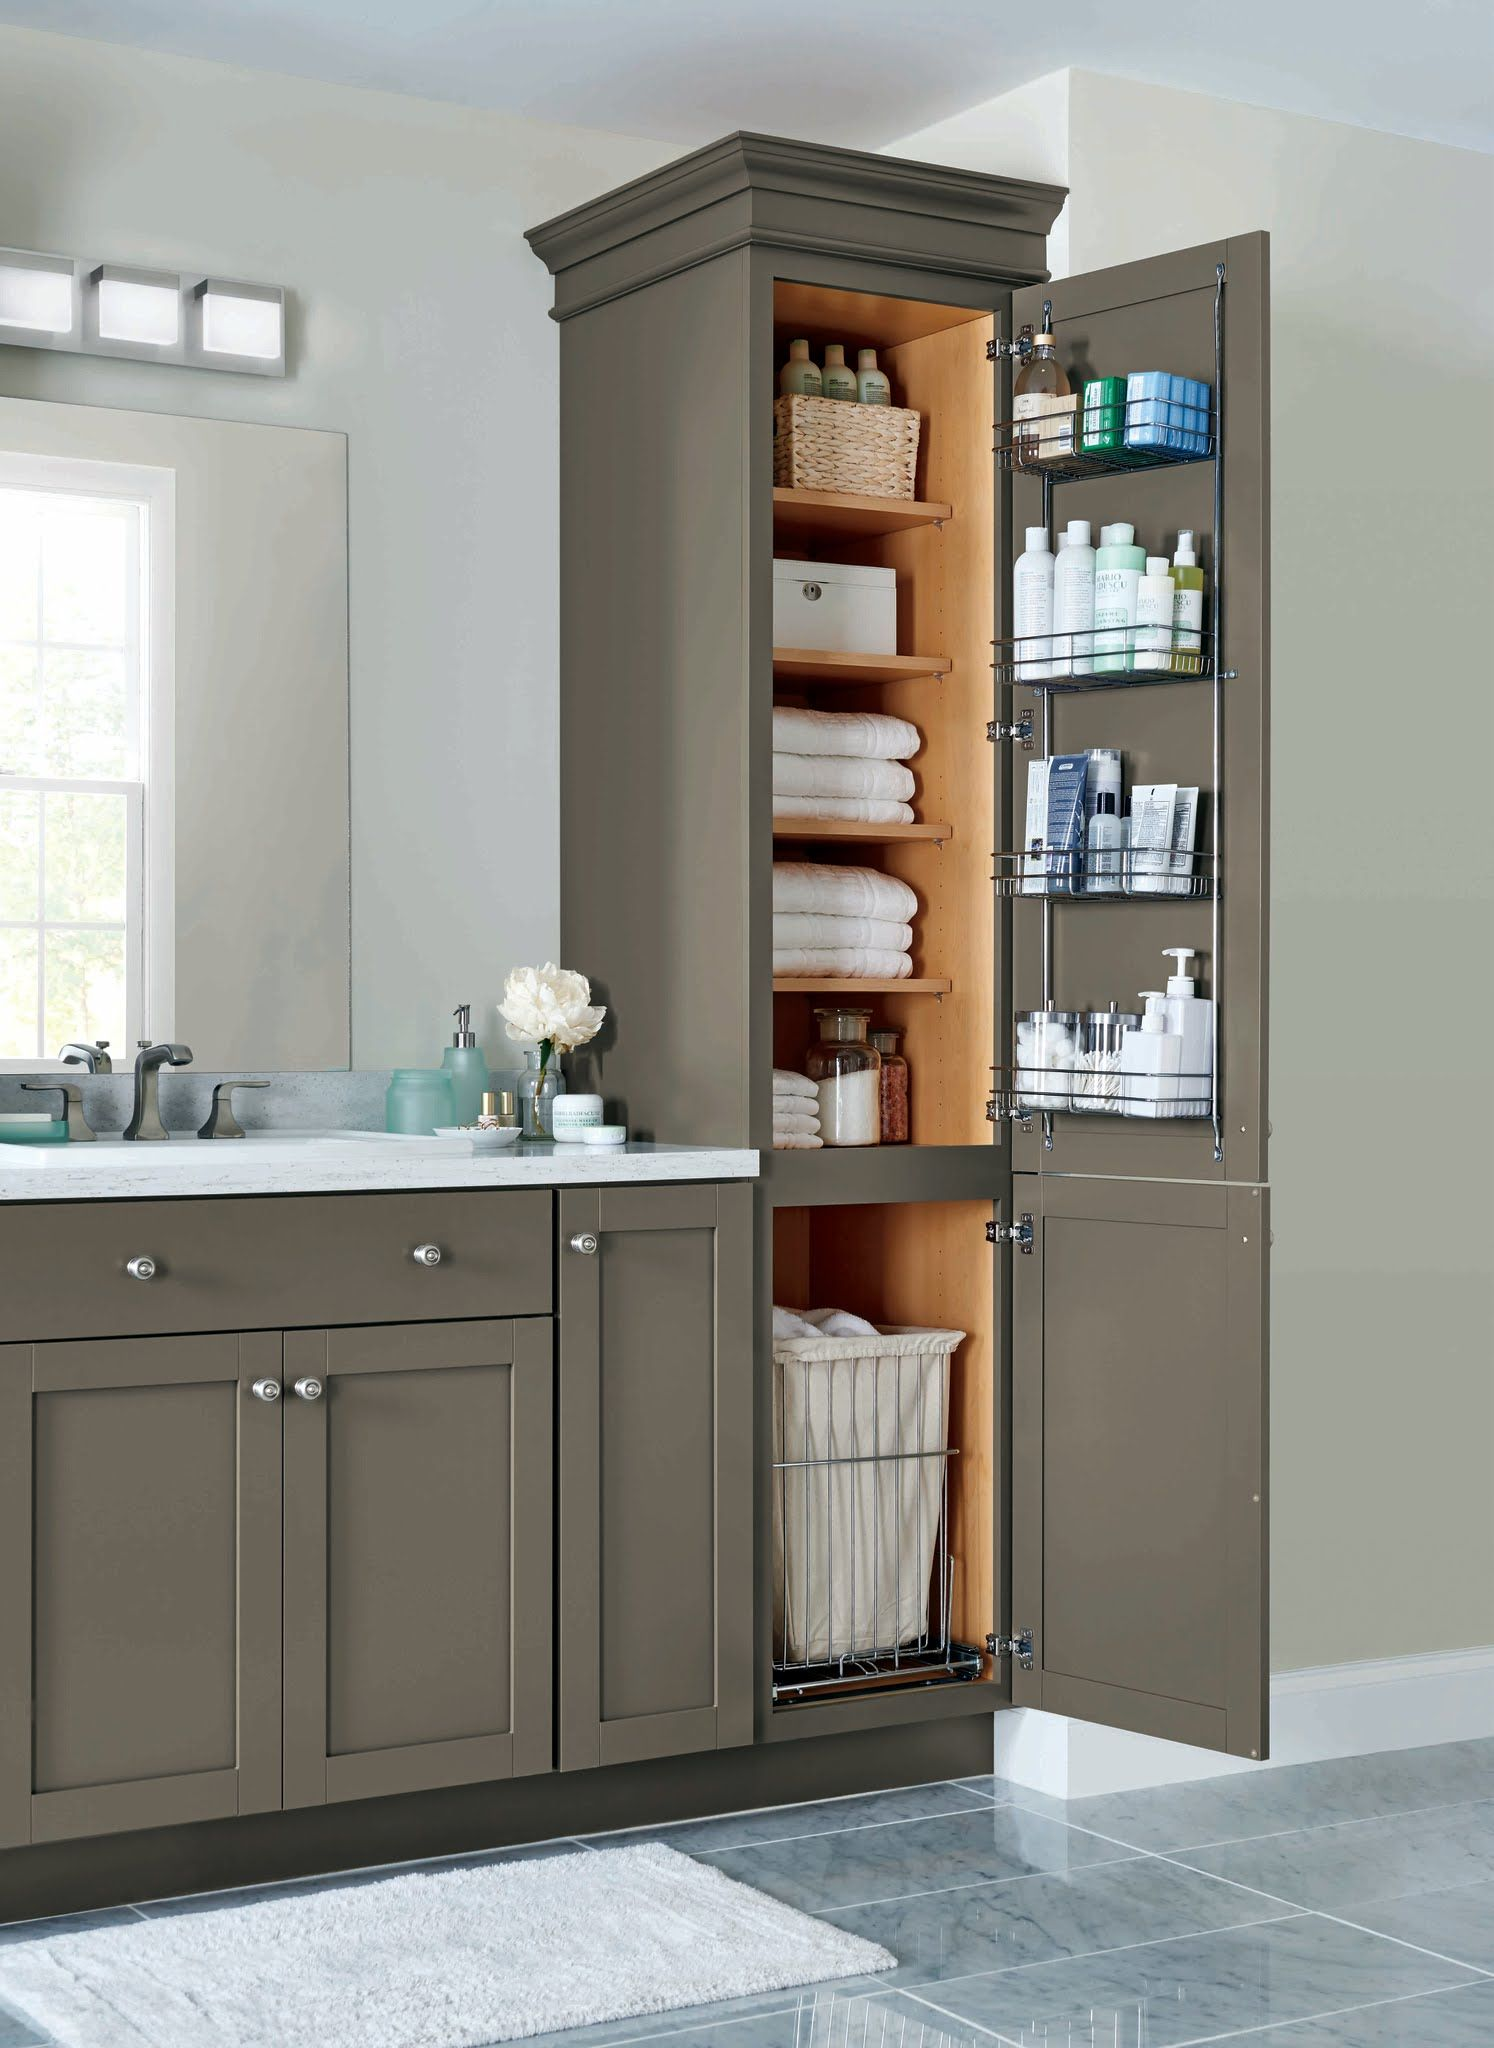 This Is Our Linen Closet With Four Adjustable Shelves And